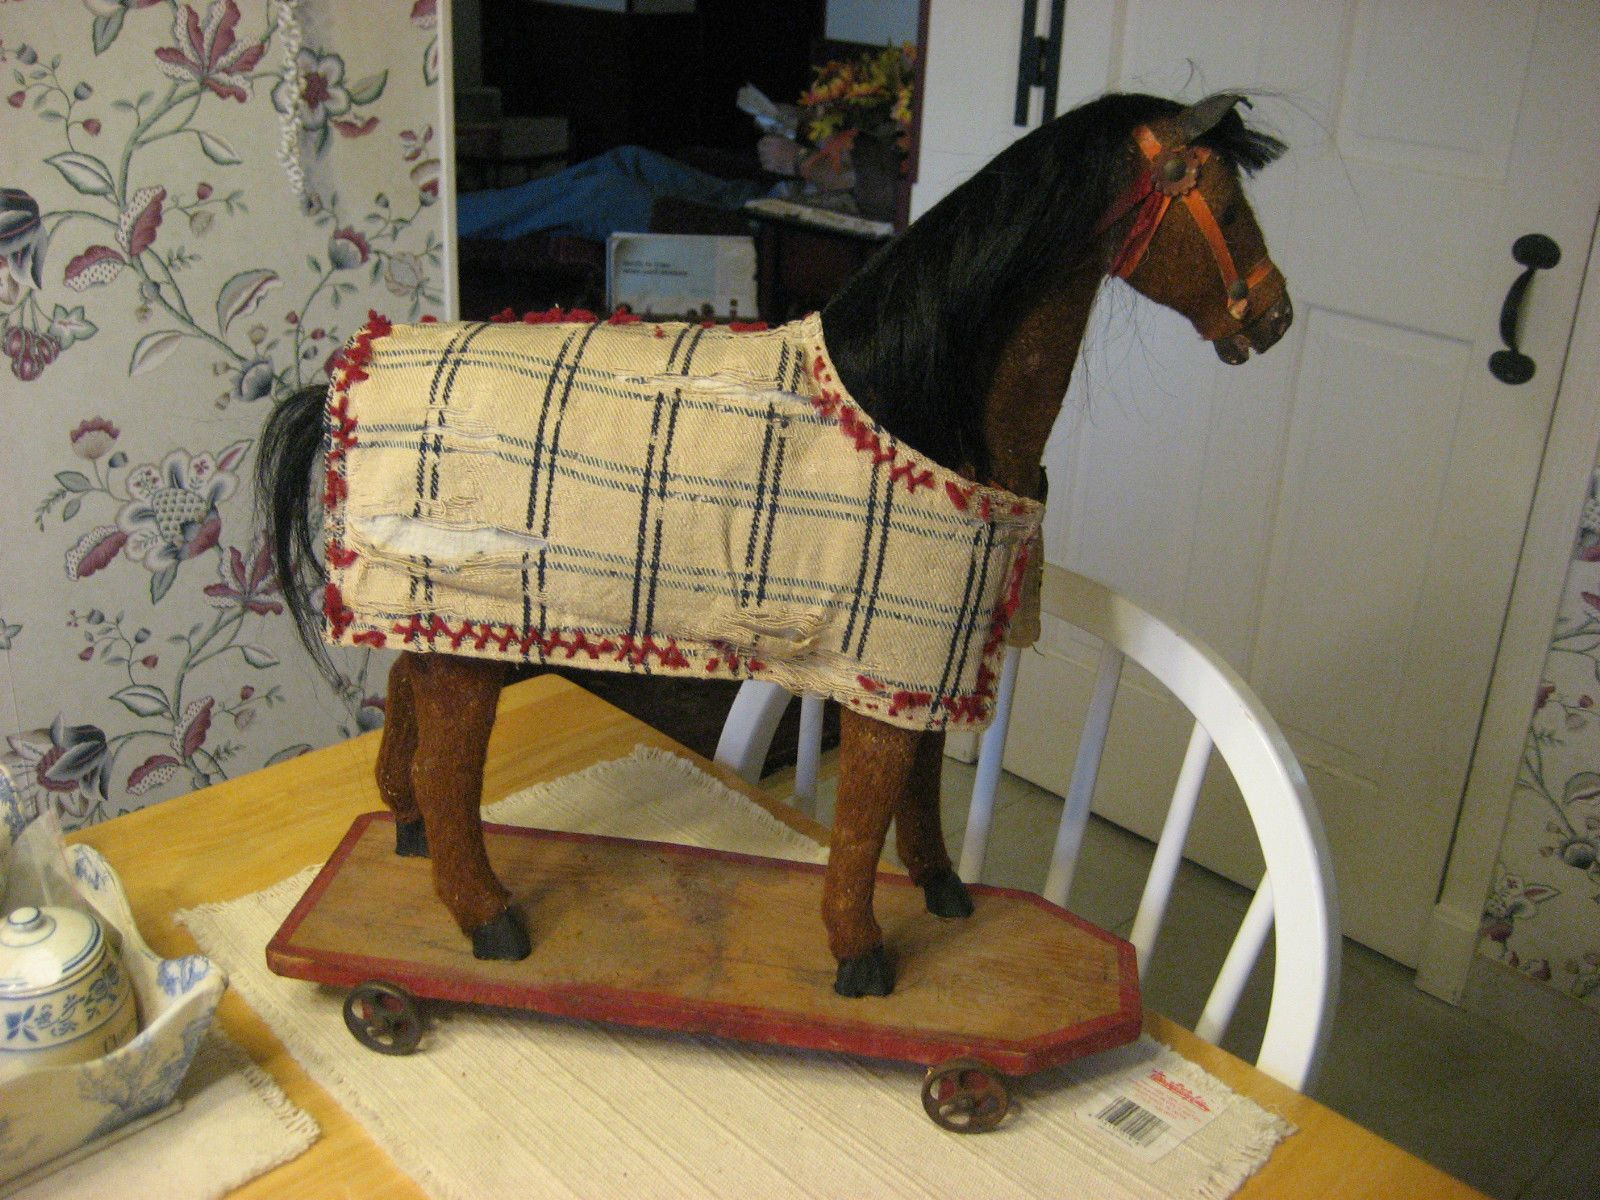 Vintage wooden music stand book stand by vintagearcheology on etsy - Late 1800s Early 1900s German Horse Pull Toy With Old Horse Blanket Saddle Bridl Ebay